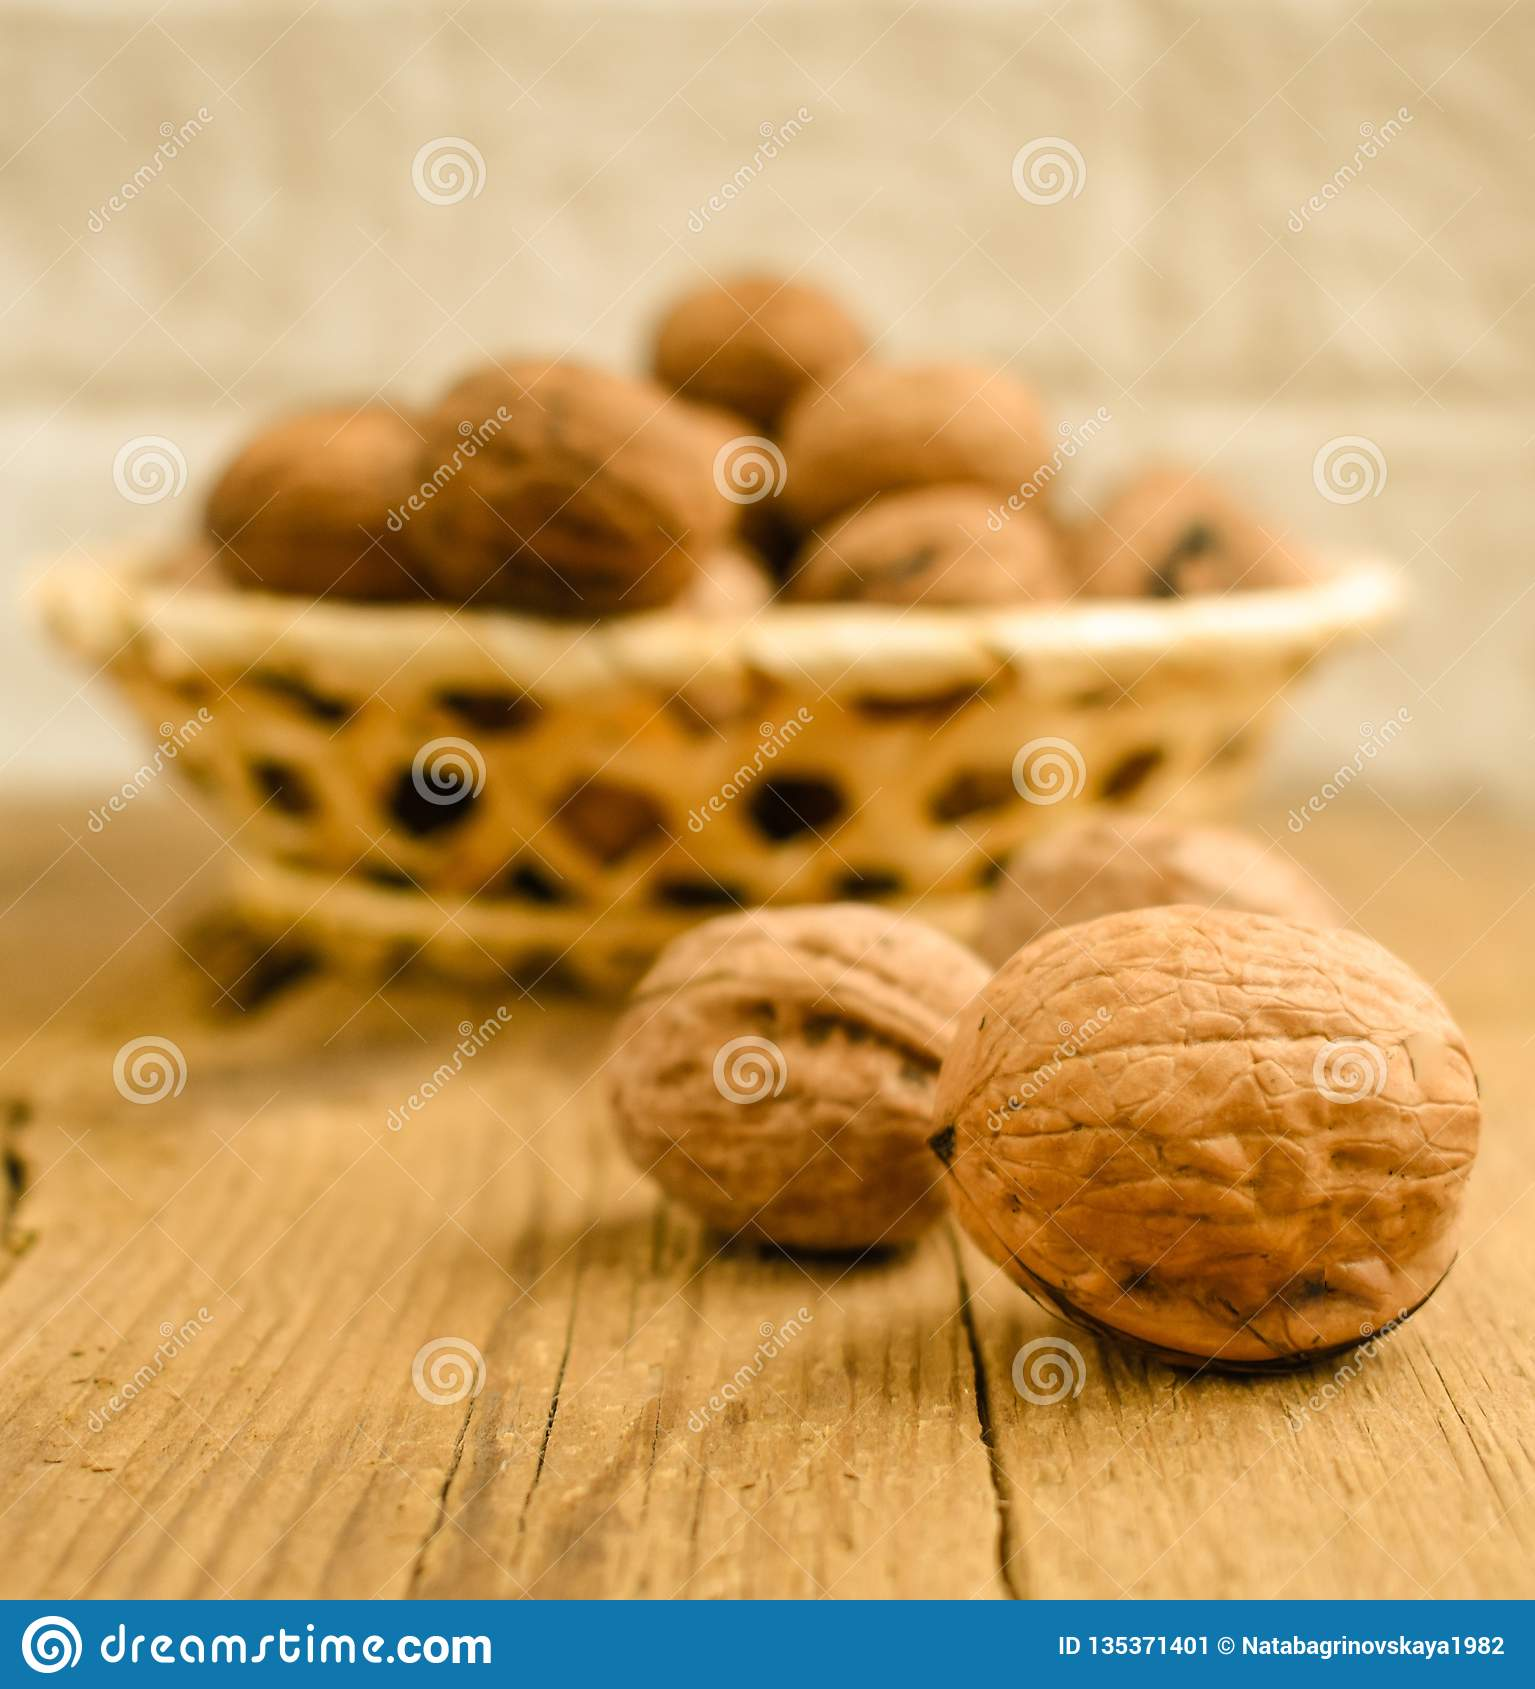 Walnuts in basket on wooden table